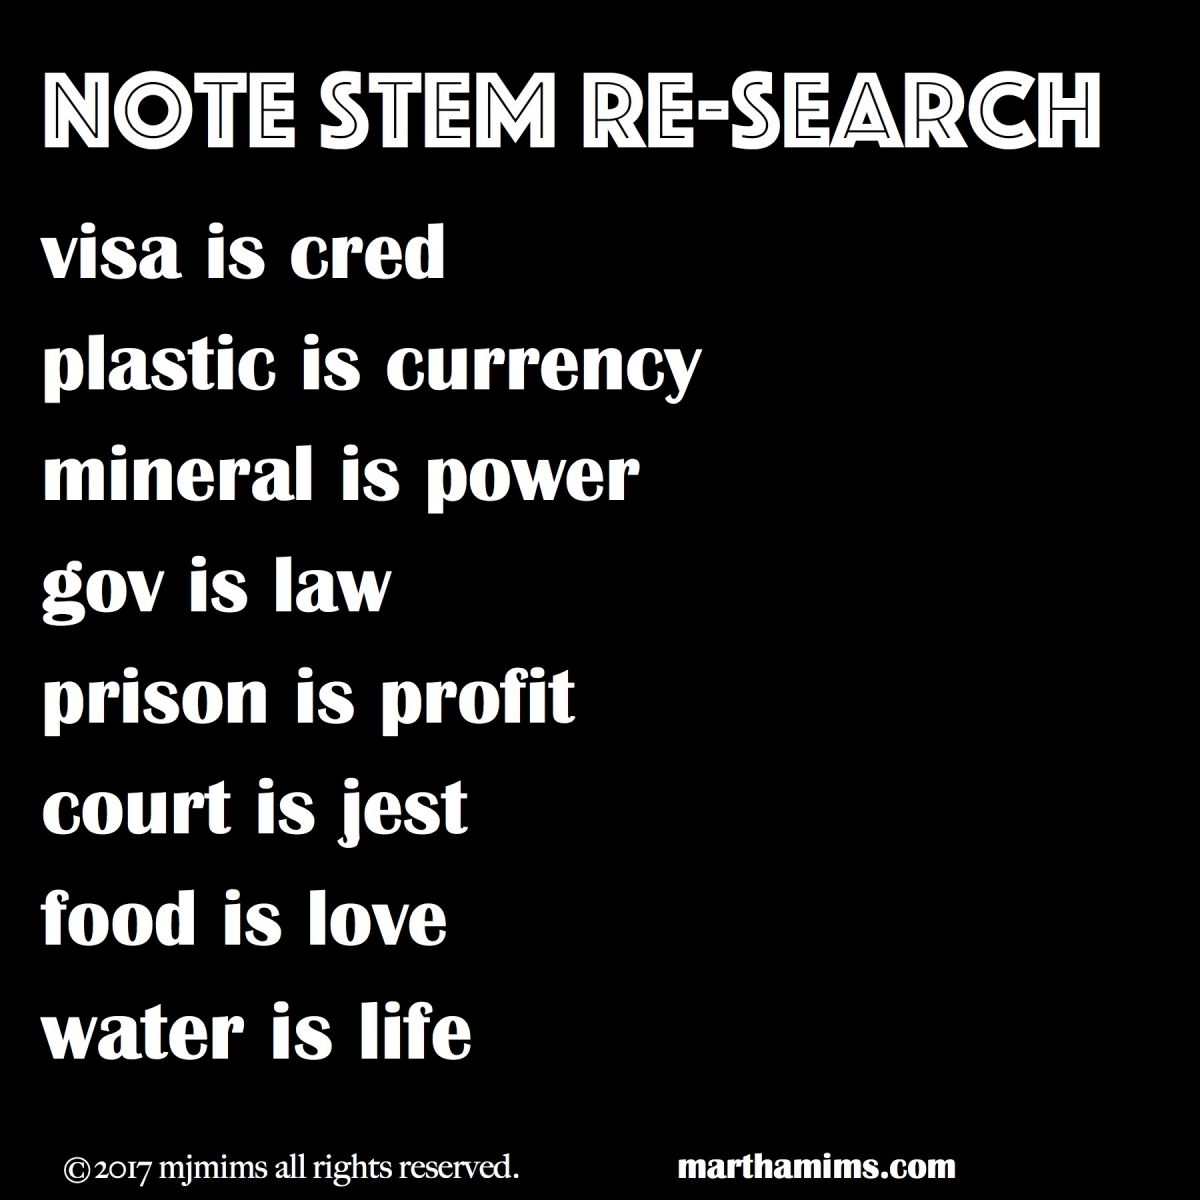 notestemresearch